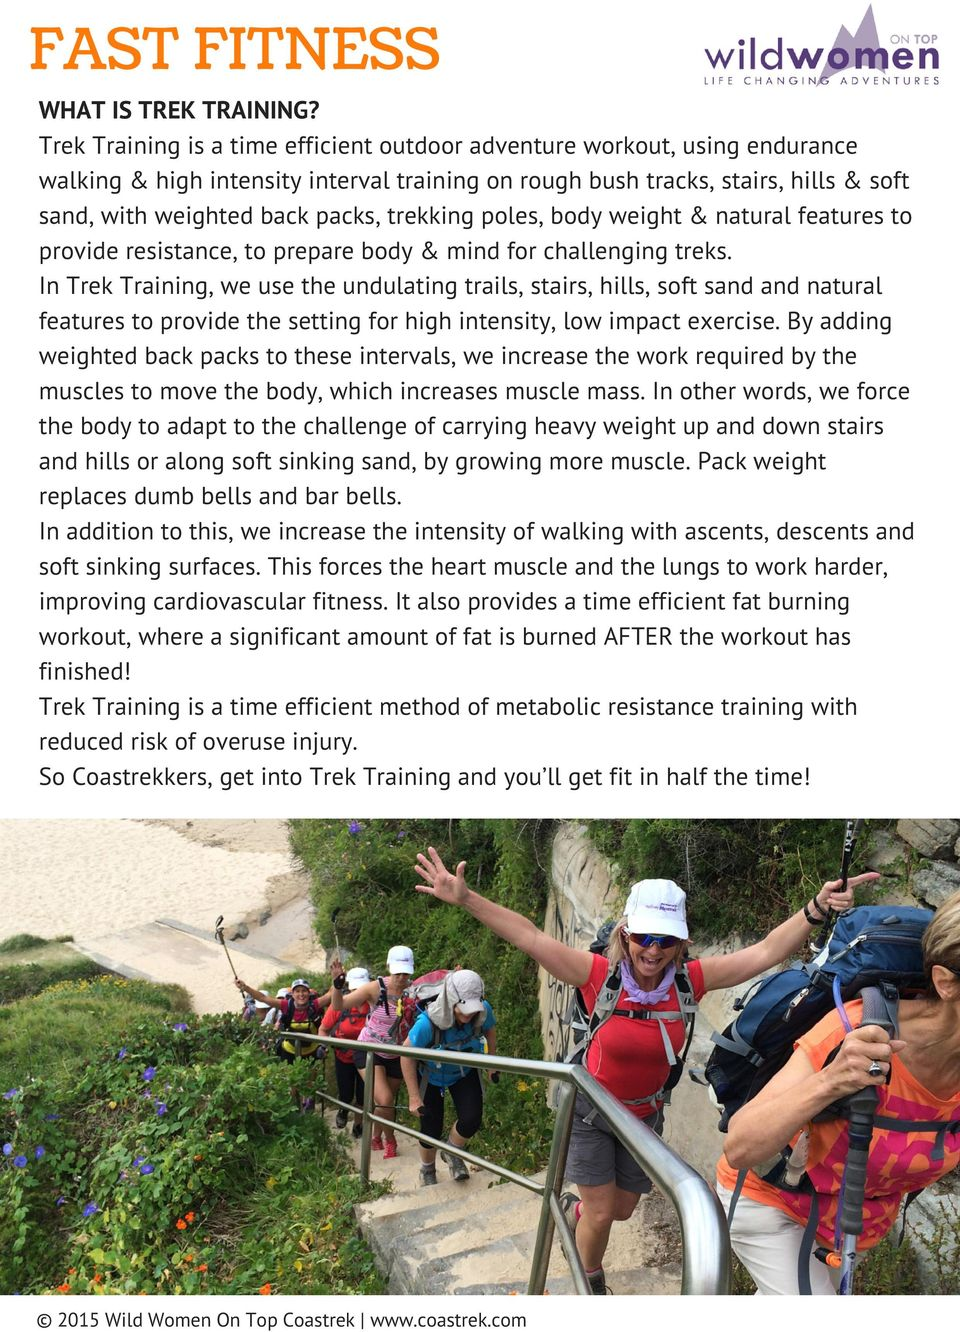 trekking poles, body weight & natural features to provide resistance, to prepare body & mind for challenging treks.